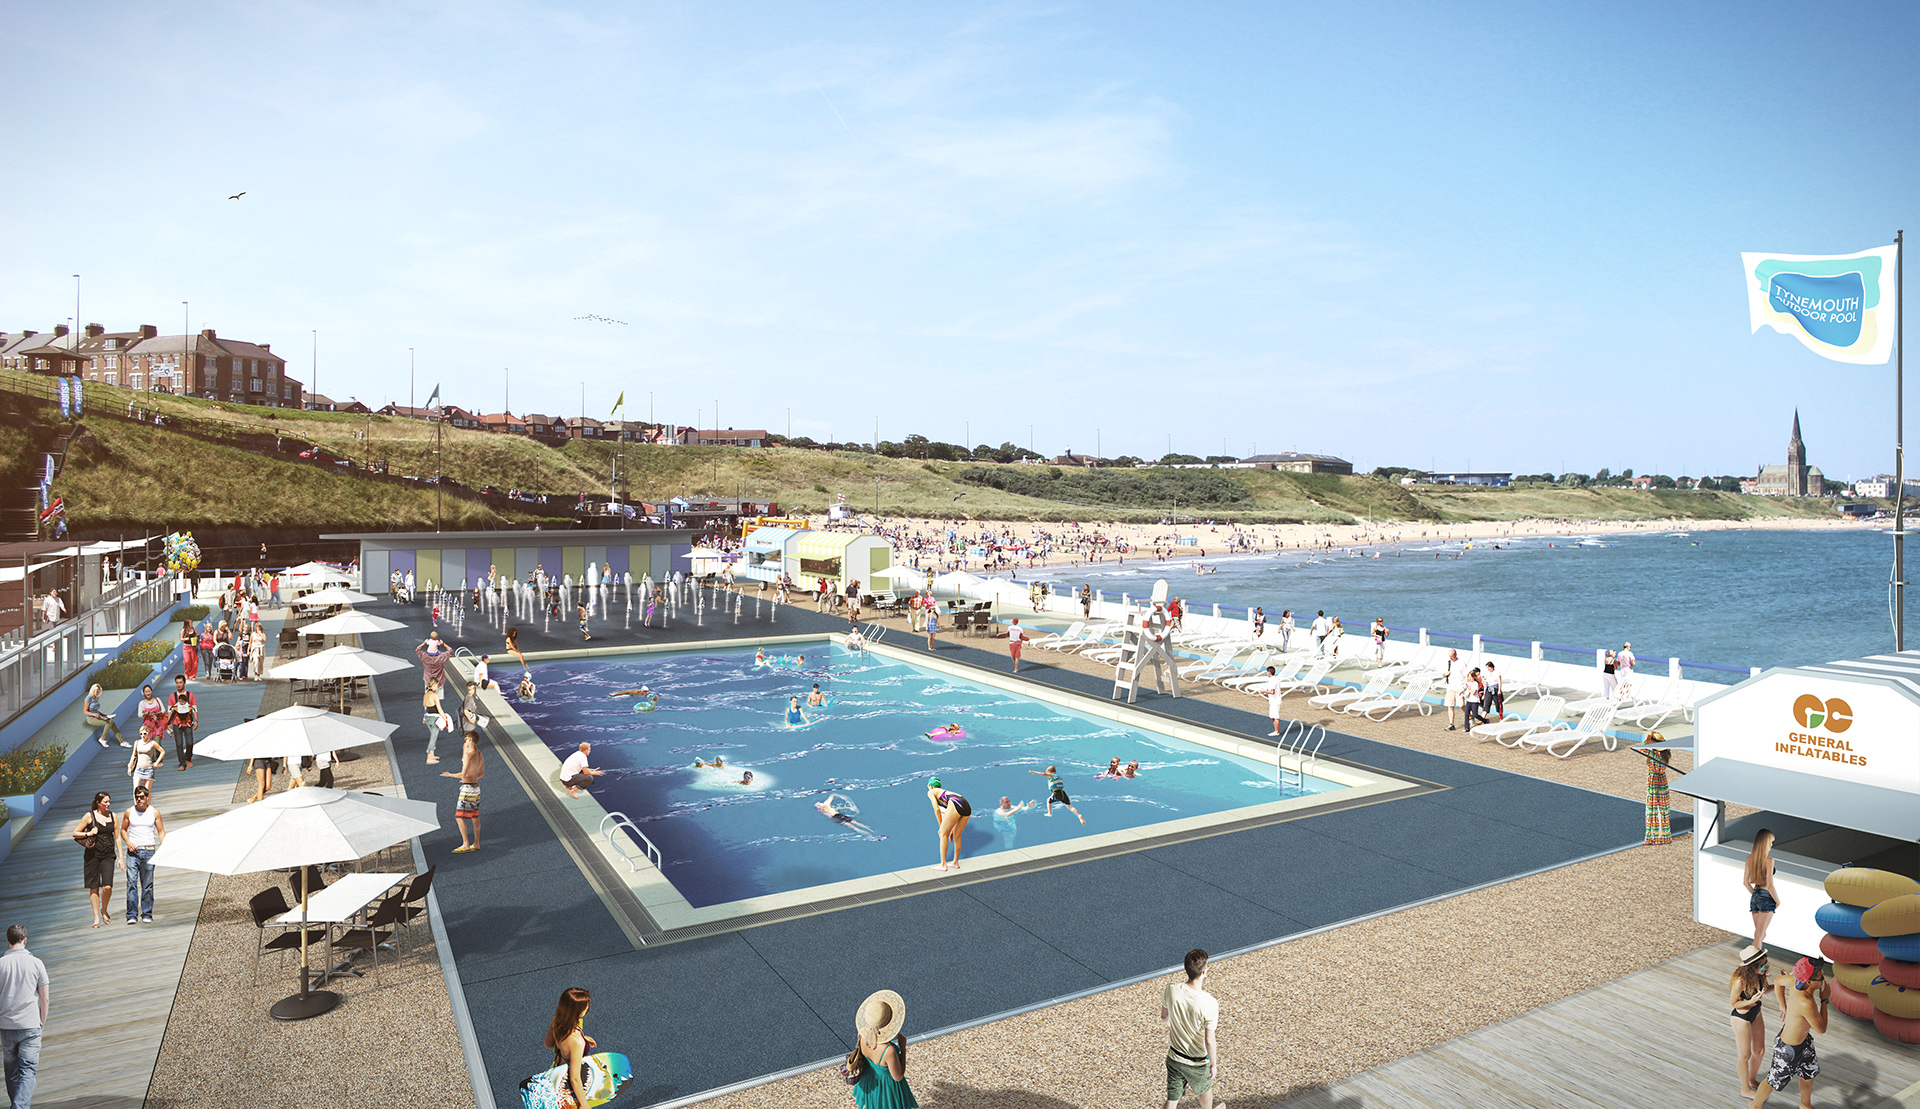 Tynemouth Outdoor Pool We 39 Re Transforming Tynemouth Outdoor Pool